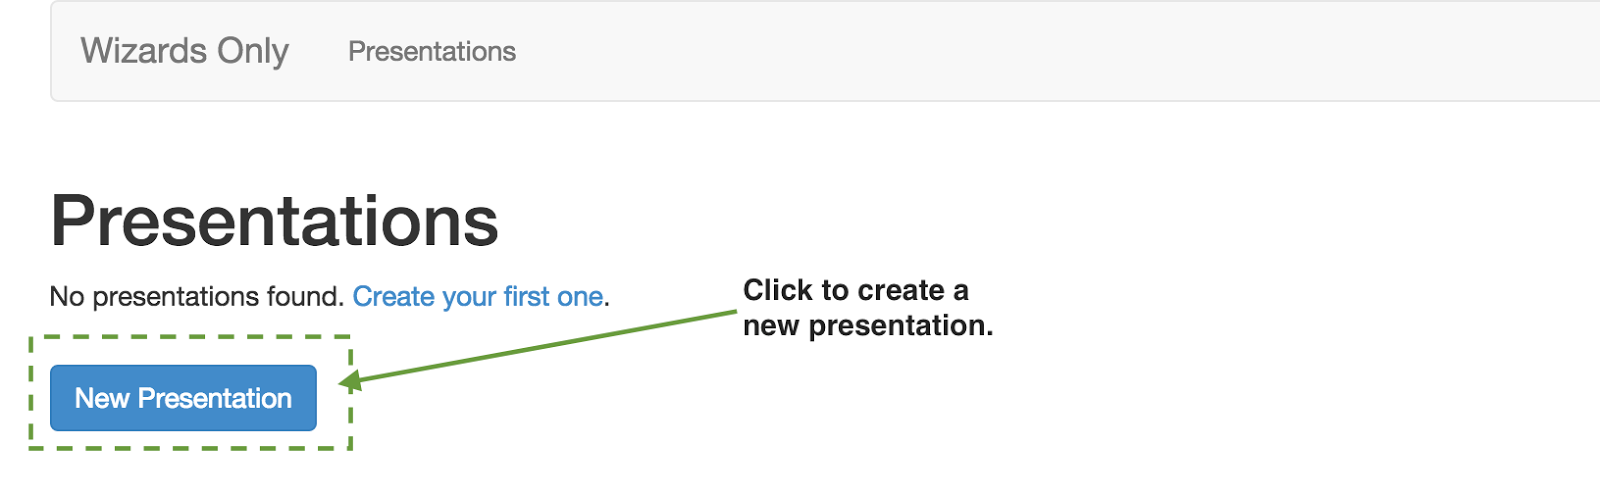 create-new-presentation.png